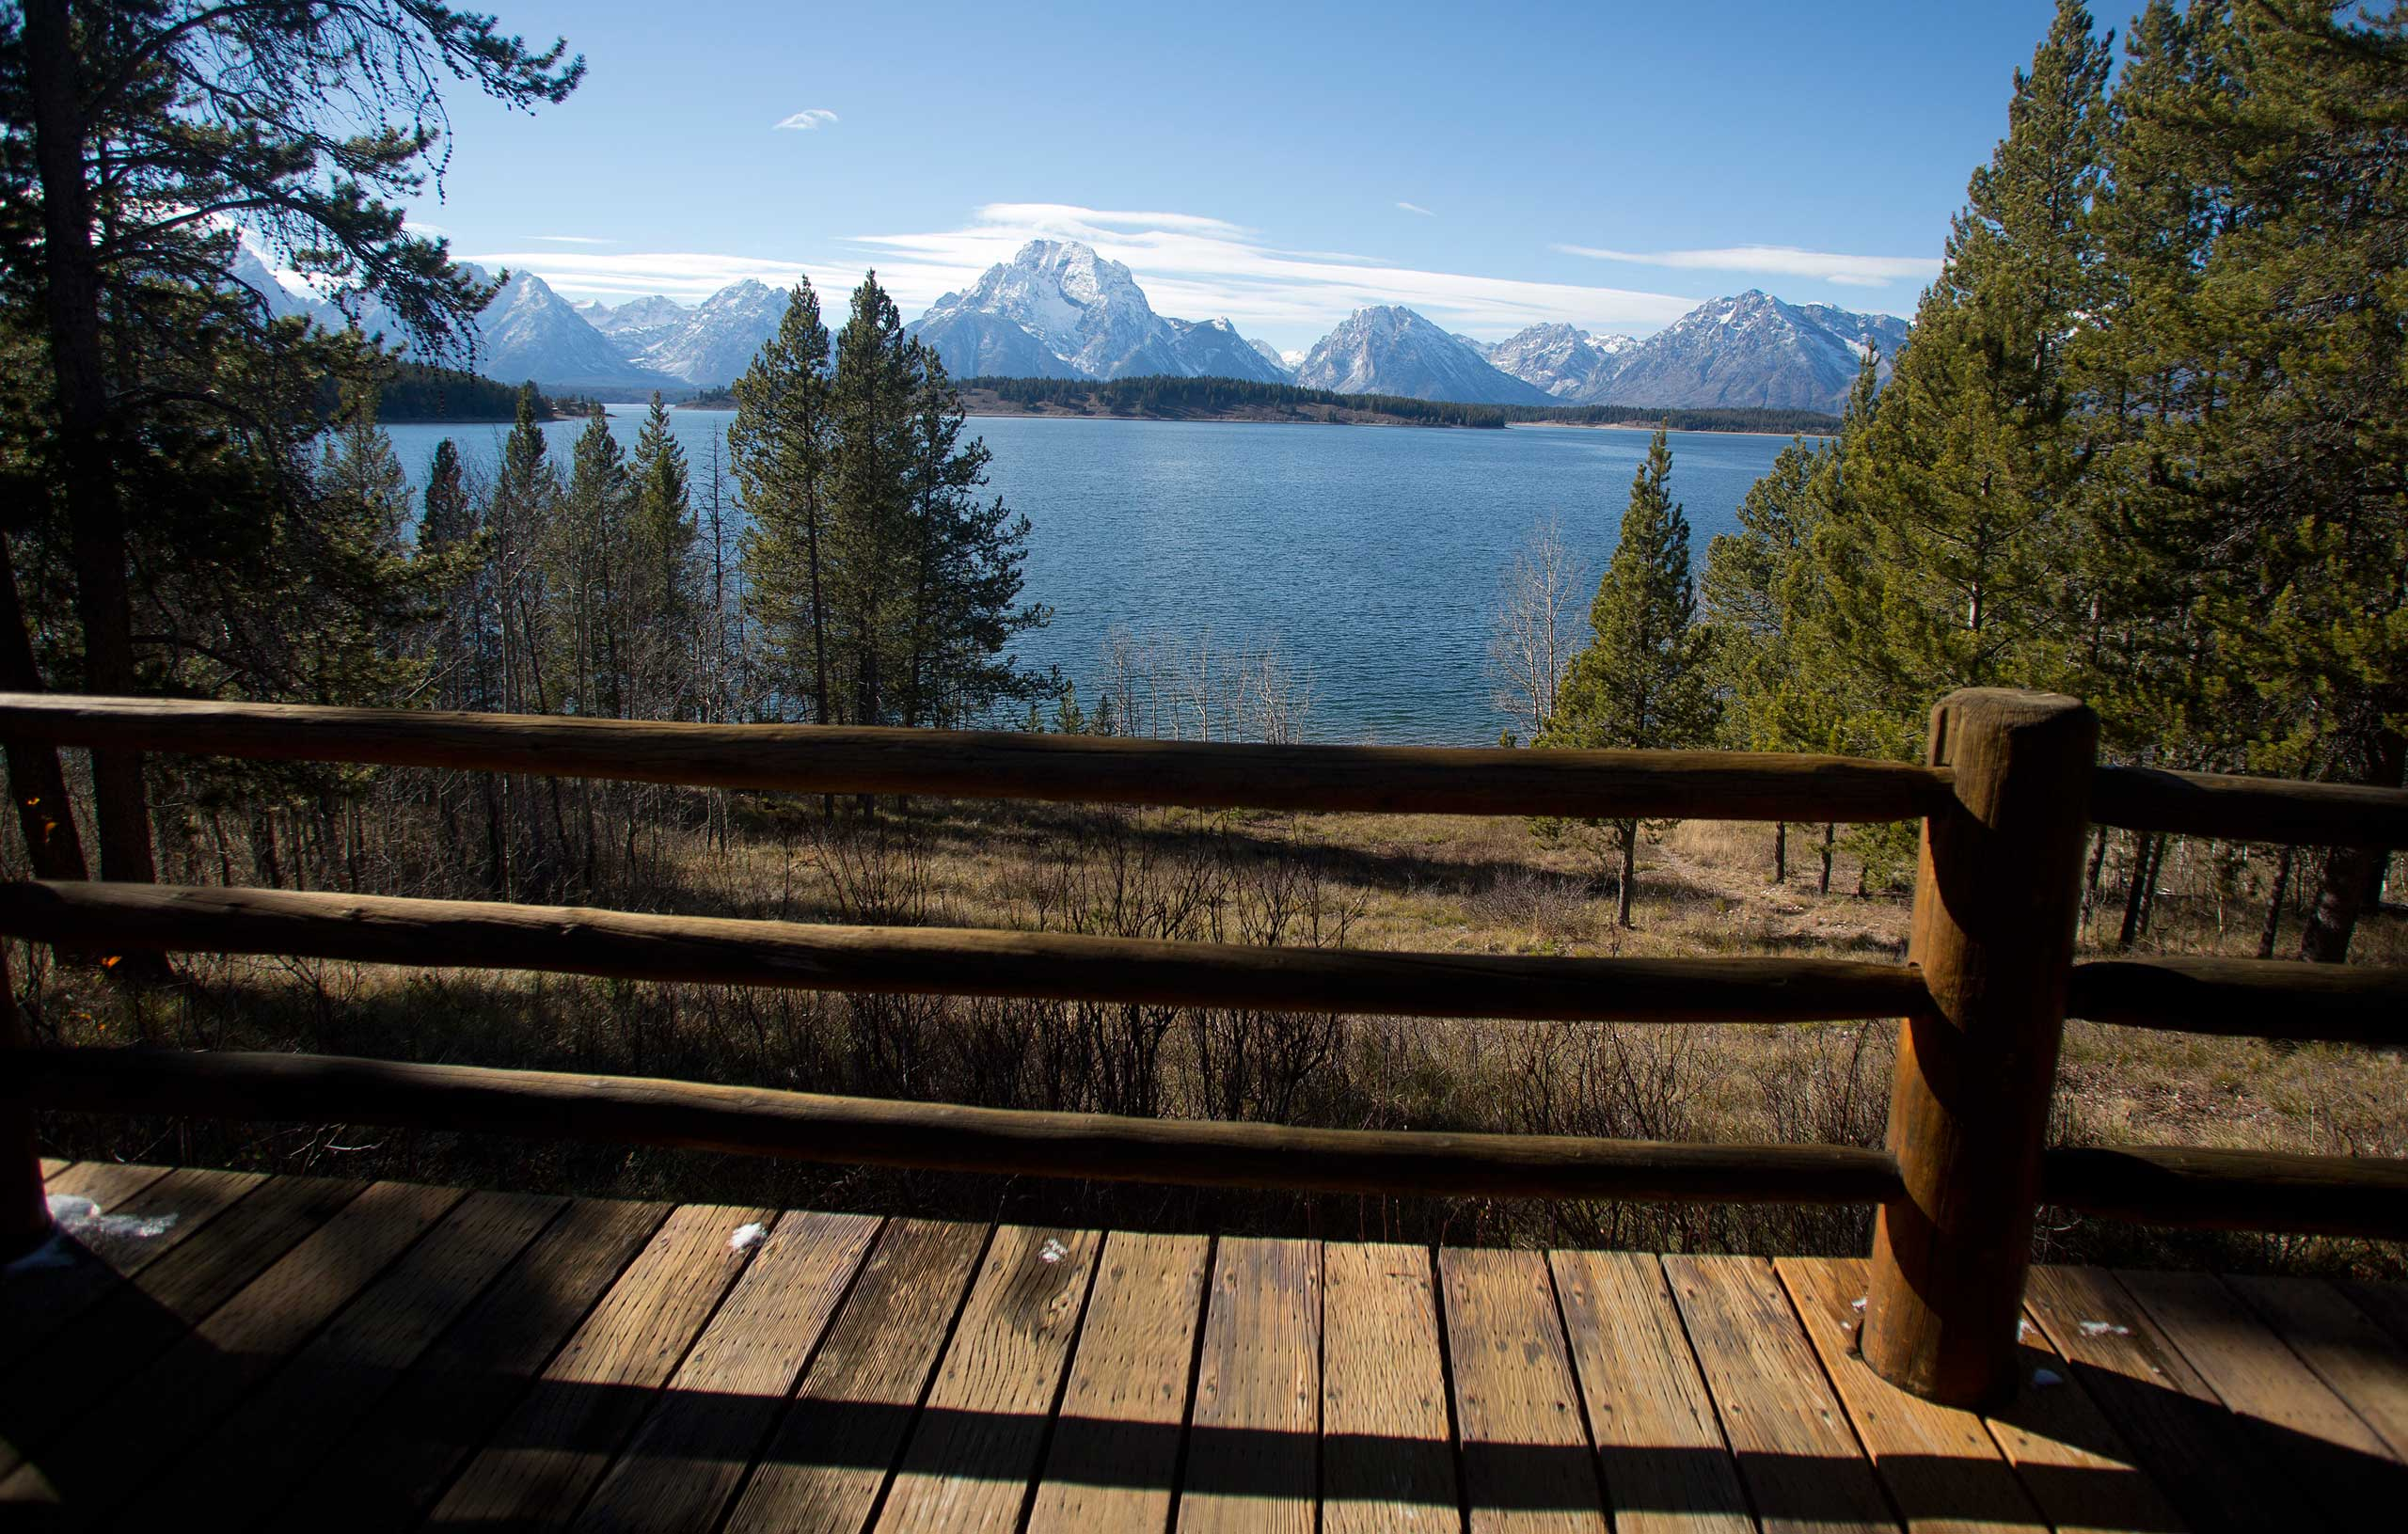 The view from the the Brinkerhoff Cabin on the shore of Jackson Lake in Grand Teton National Park outside Jackson, Wyo. on Oct. 28, 2014.